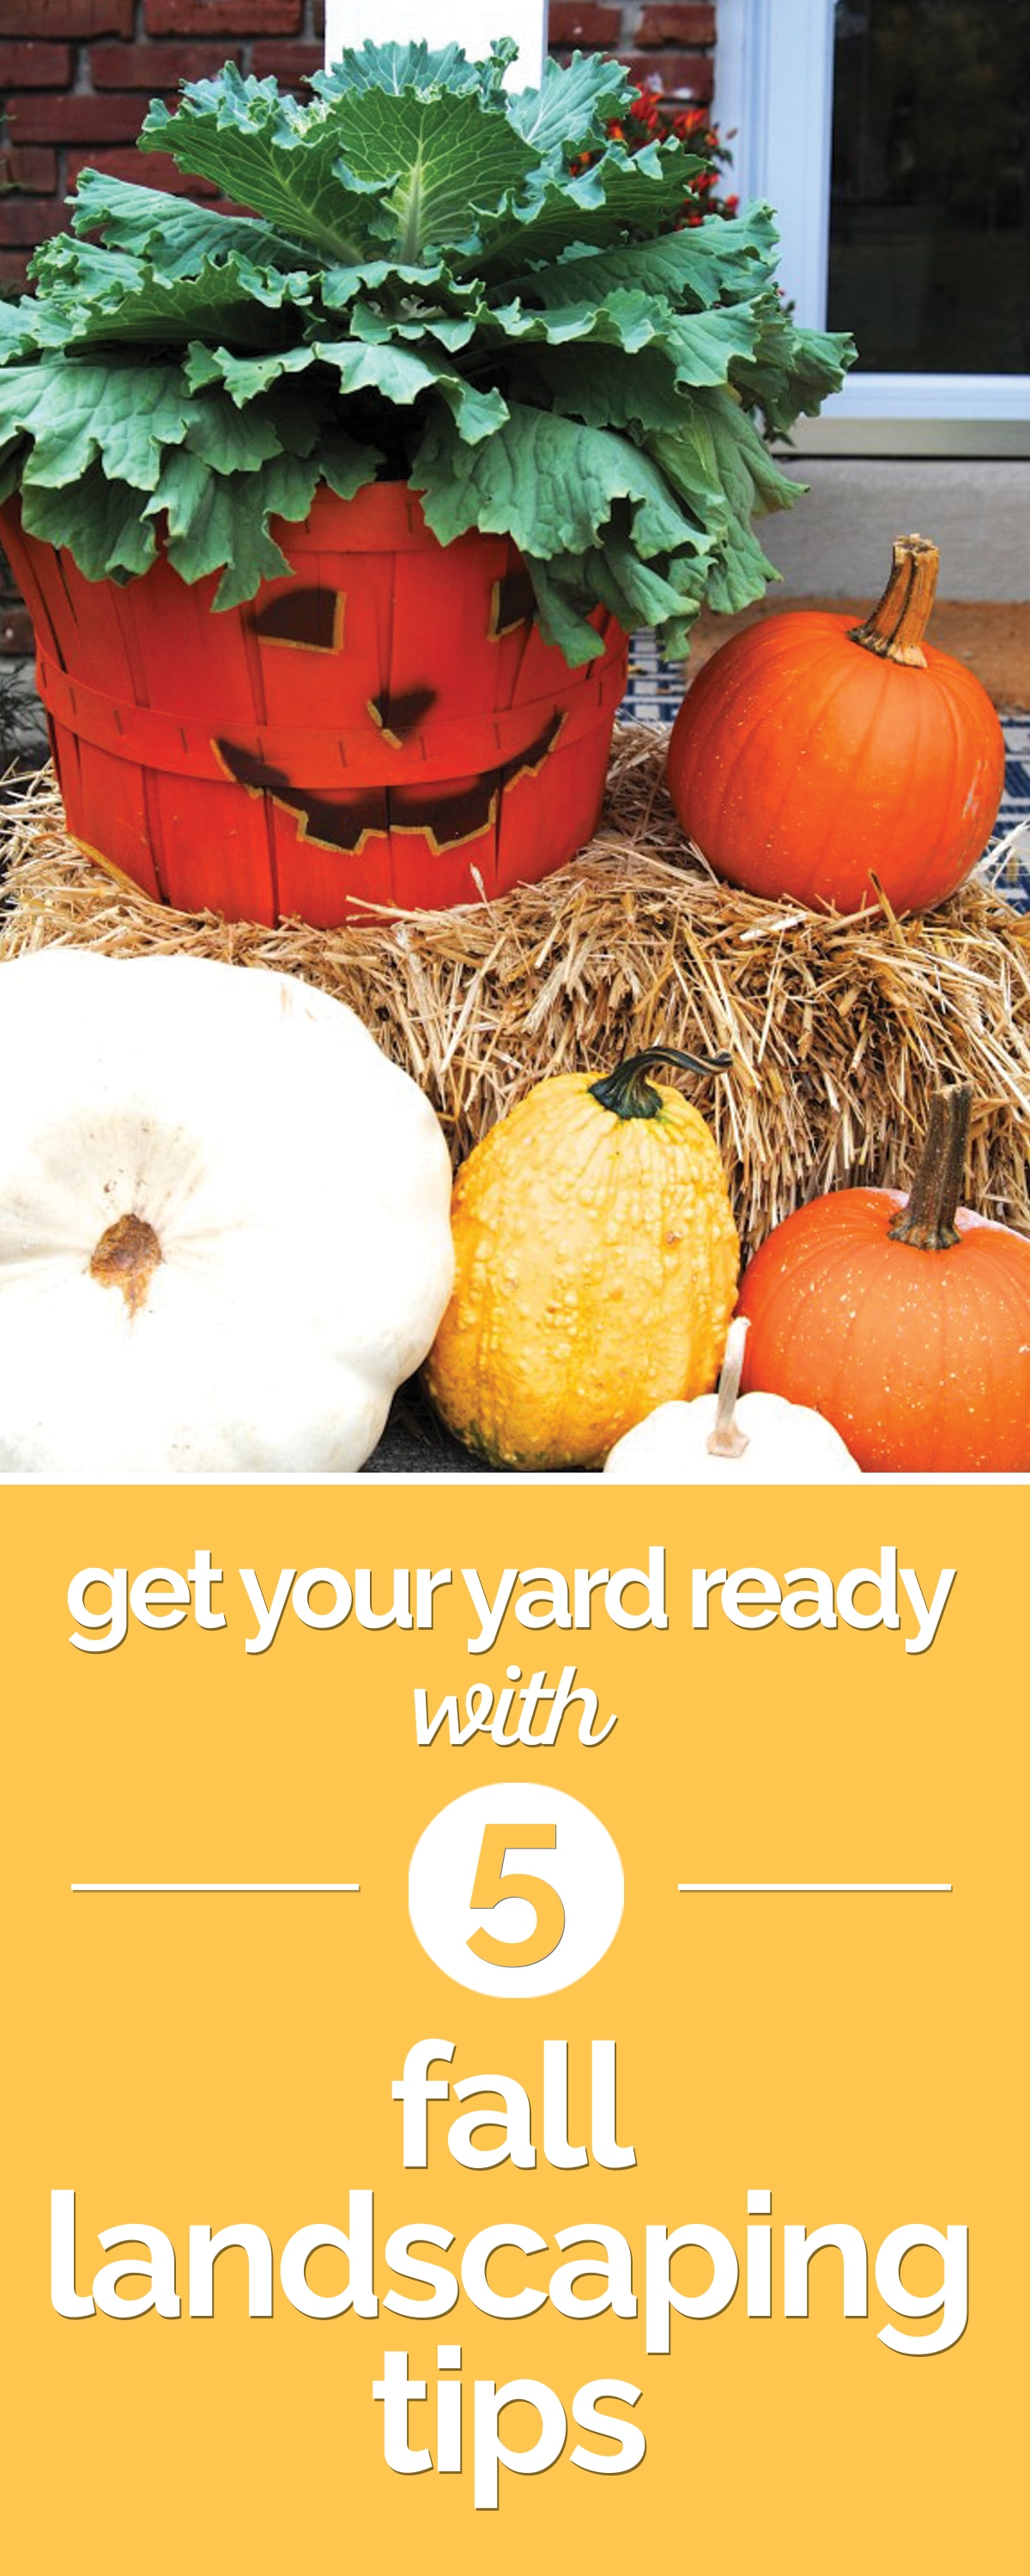 Get Your Yard Ready with 8 Fall Landscaping Tips | thegoodstuff